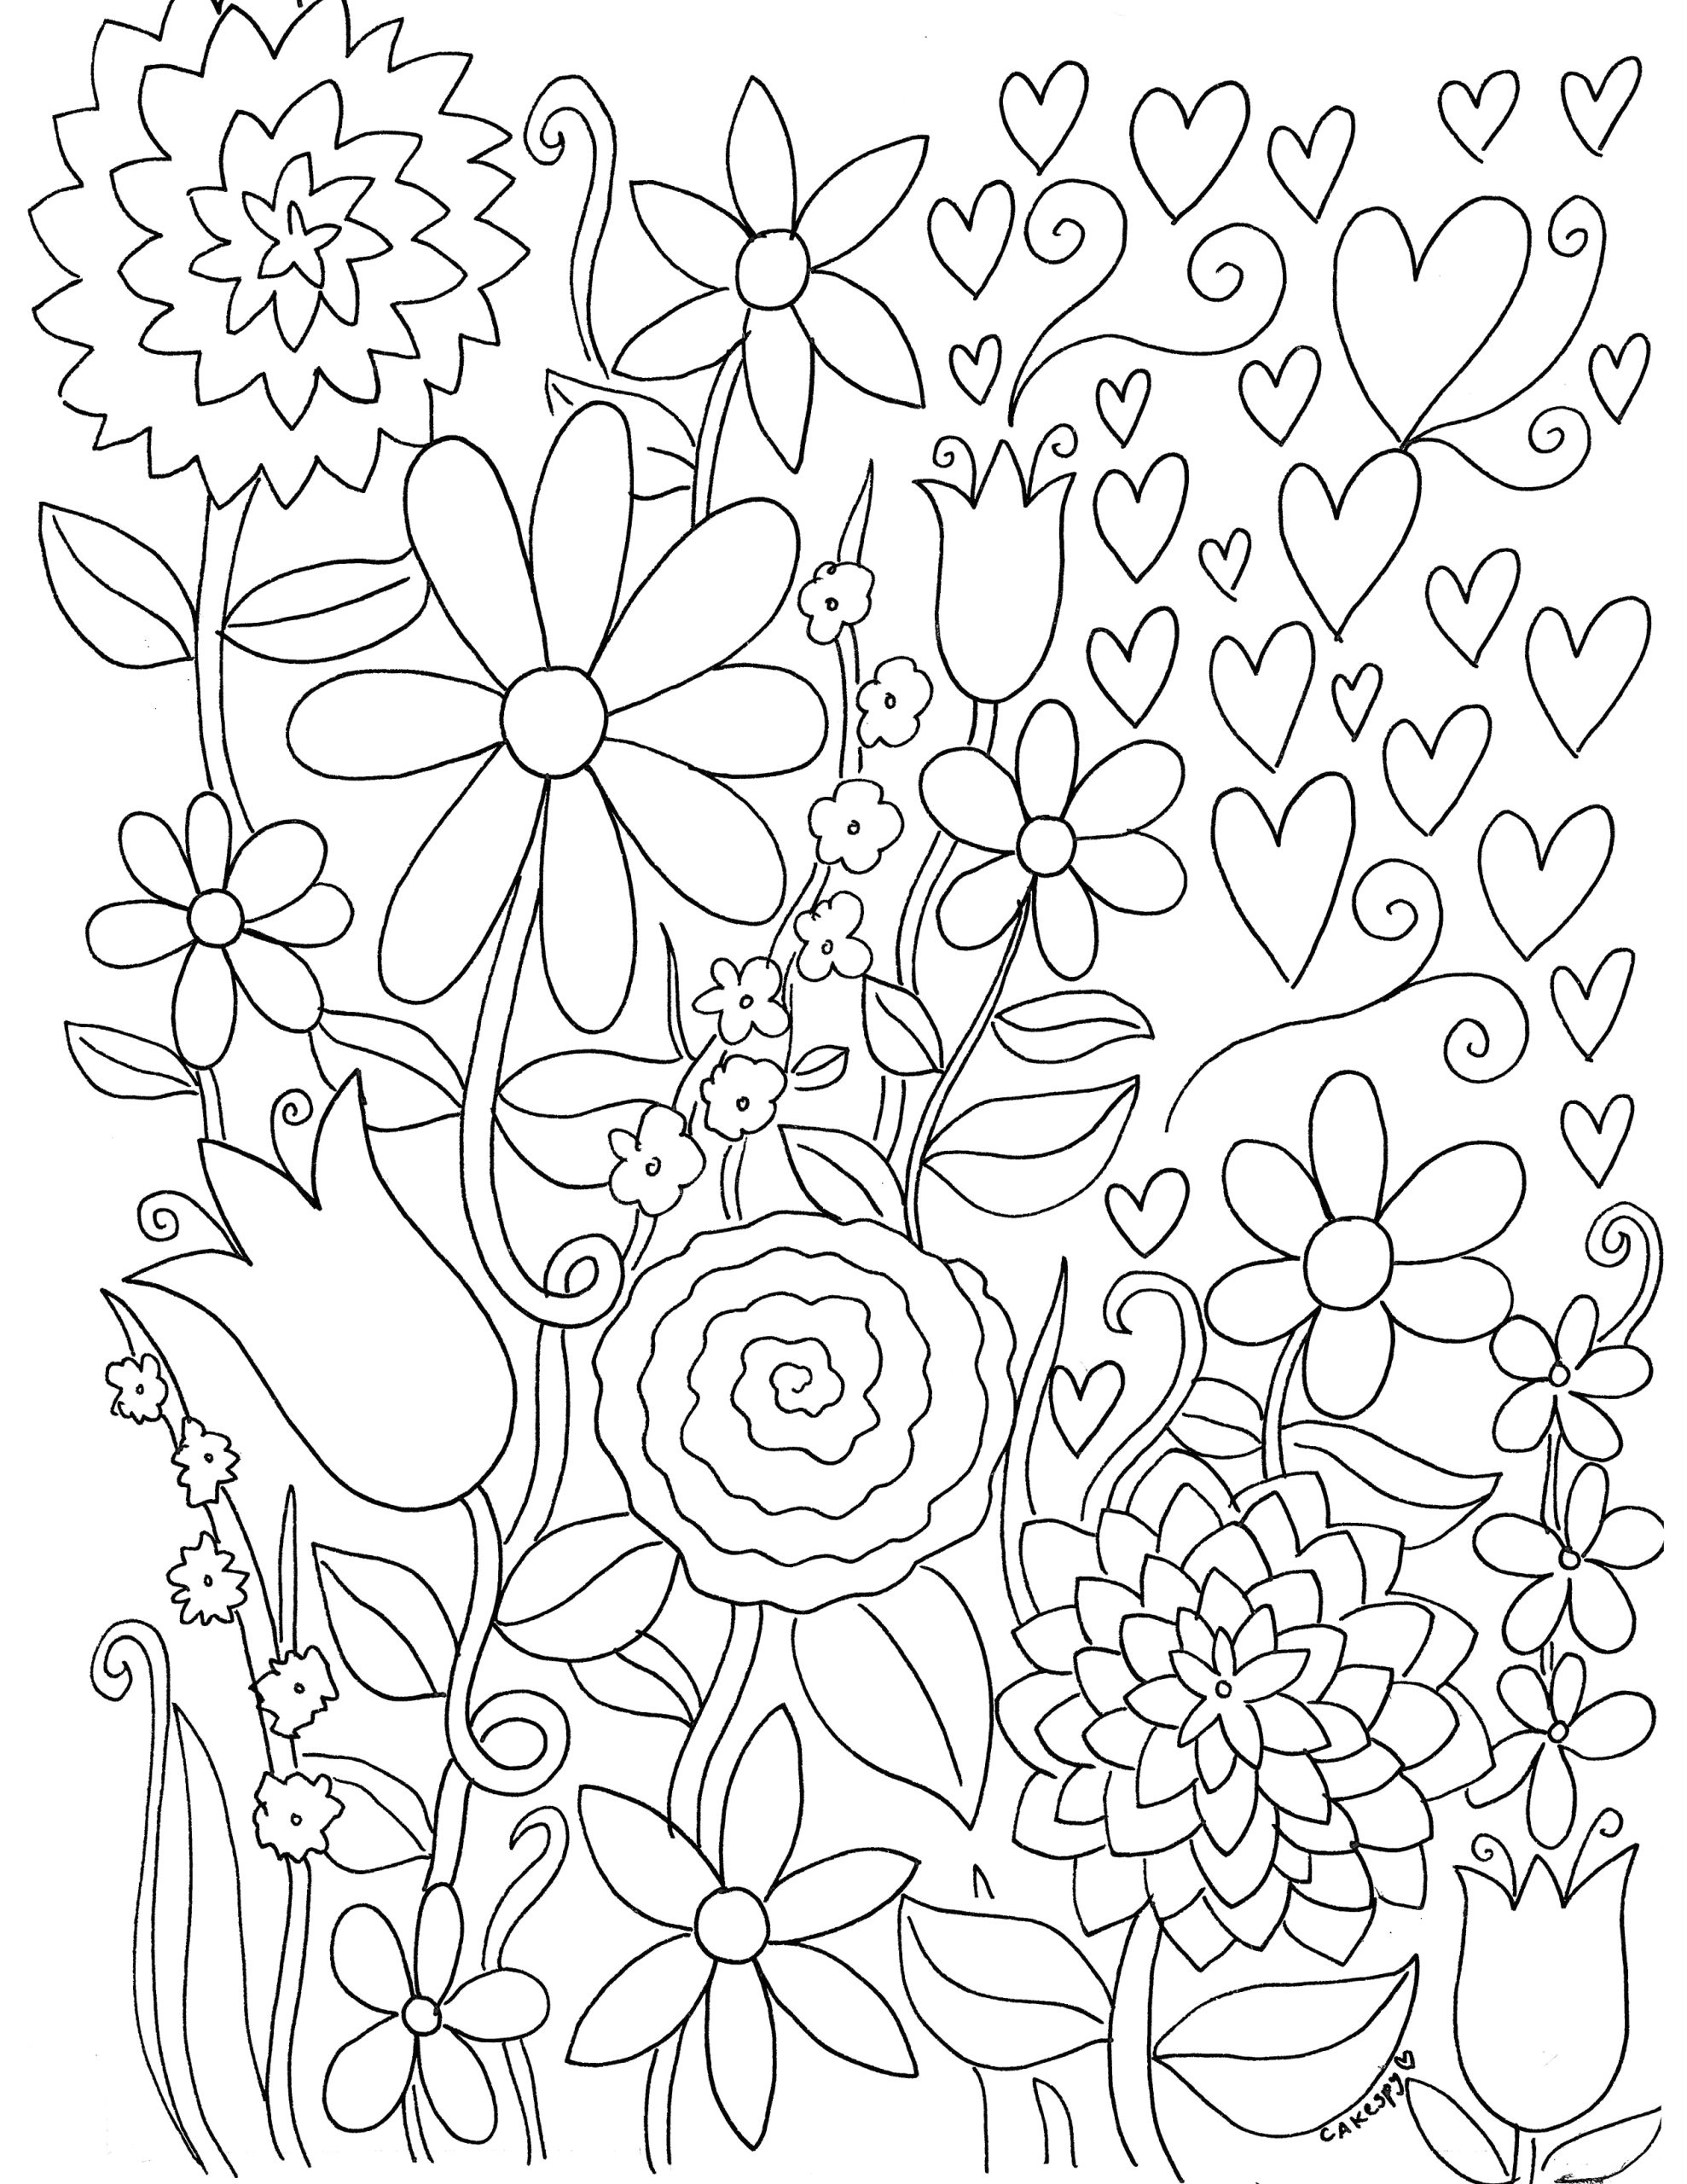 Free Online Coloring by Number Pages for Adults Free Paint by Numbers for Adults Downloadable